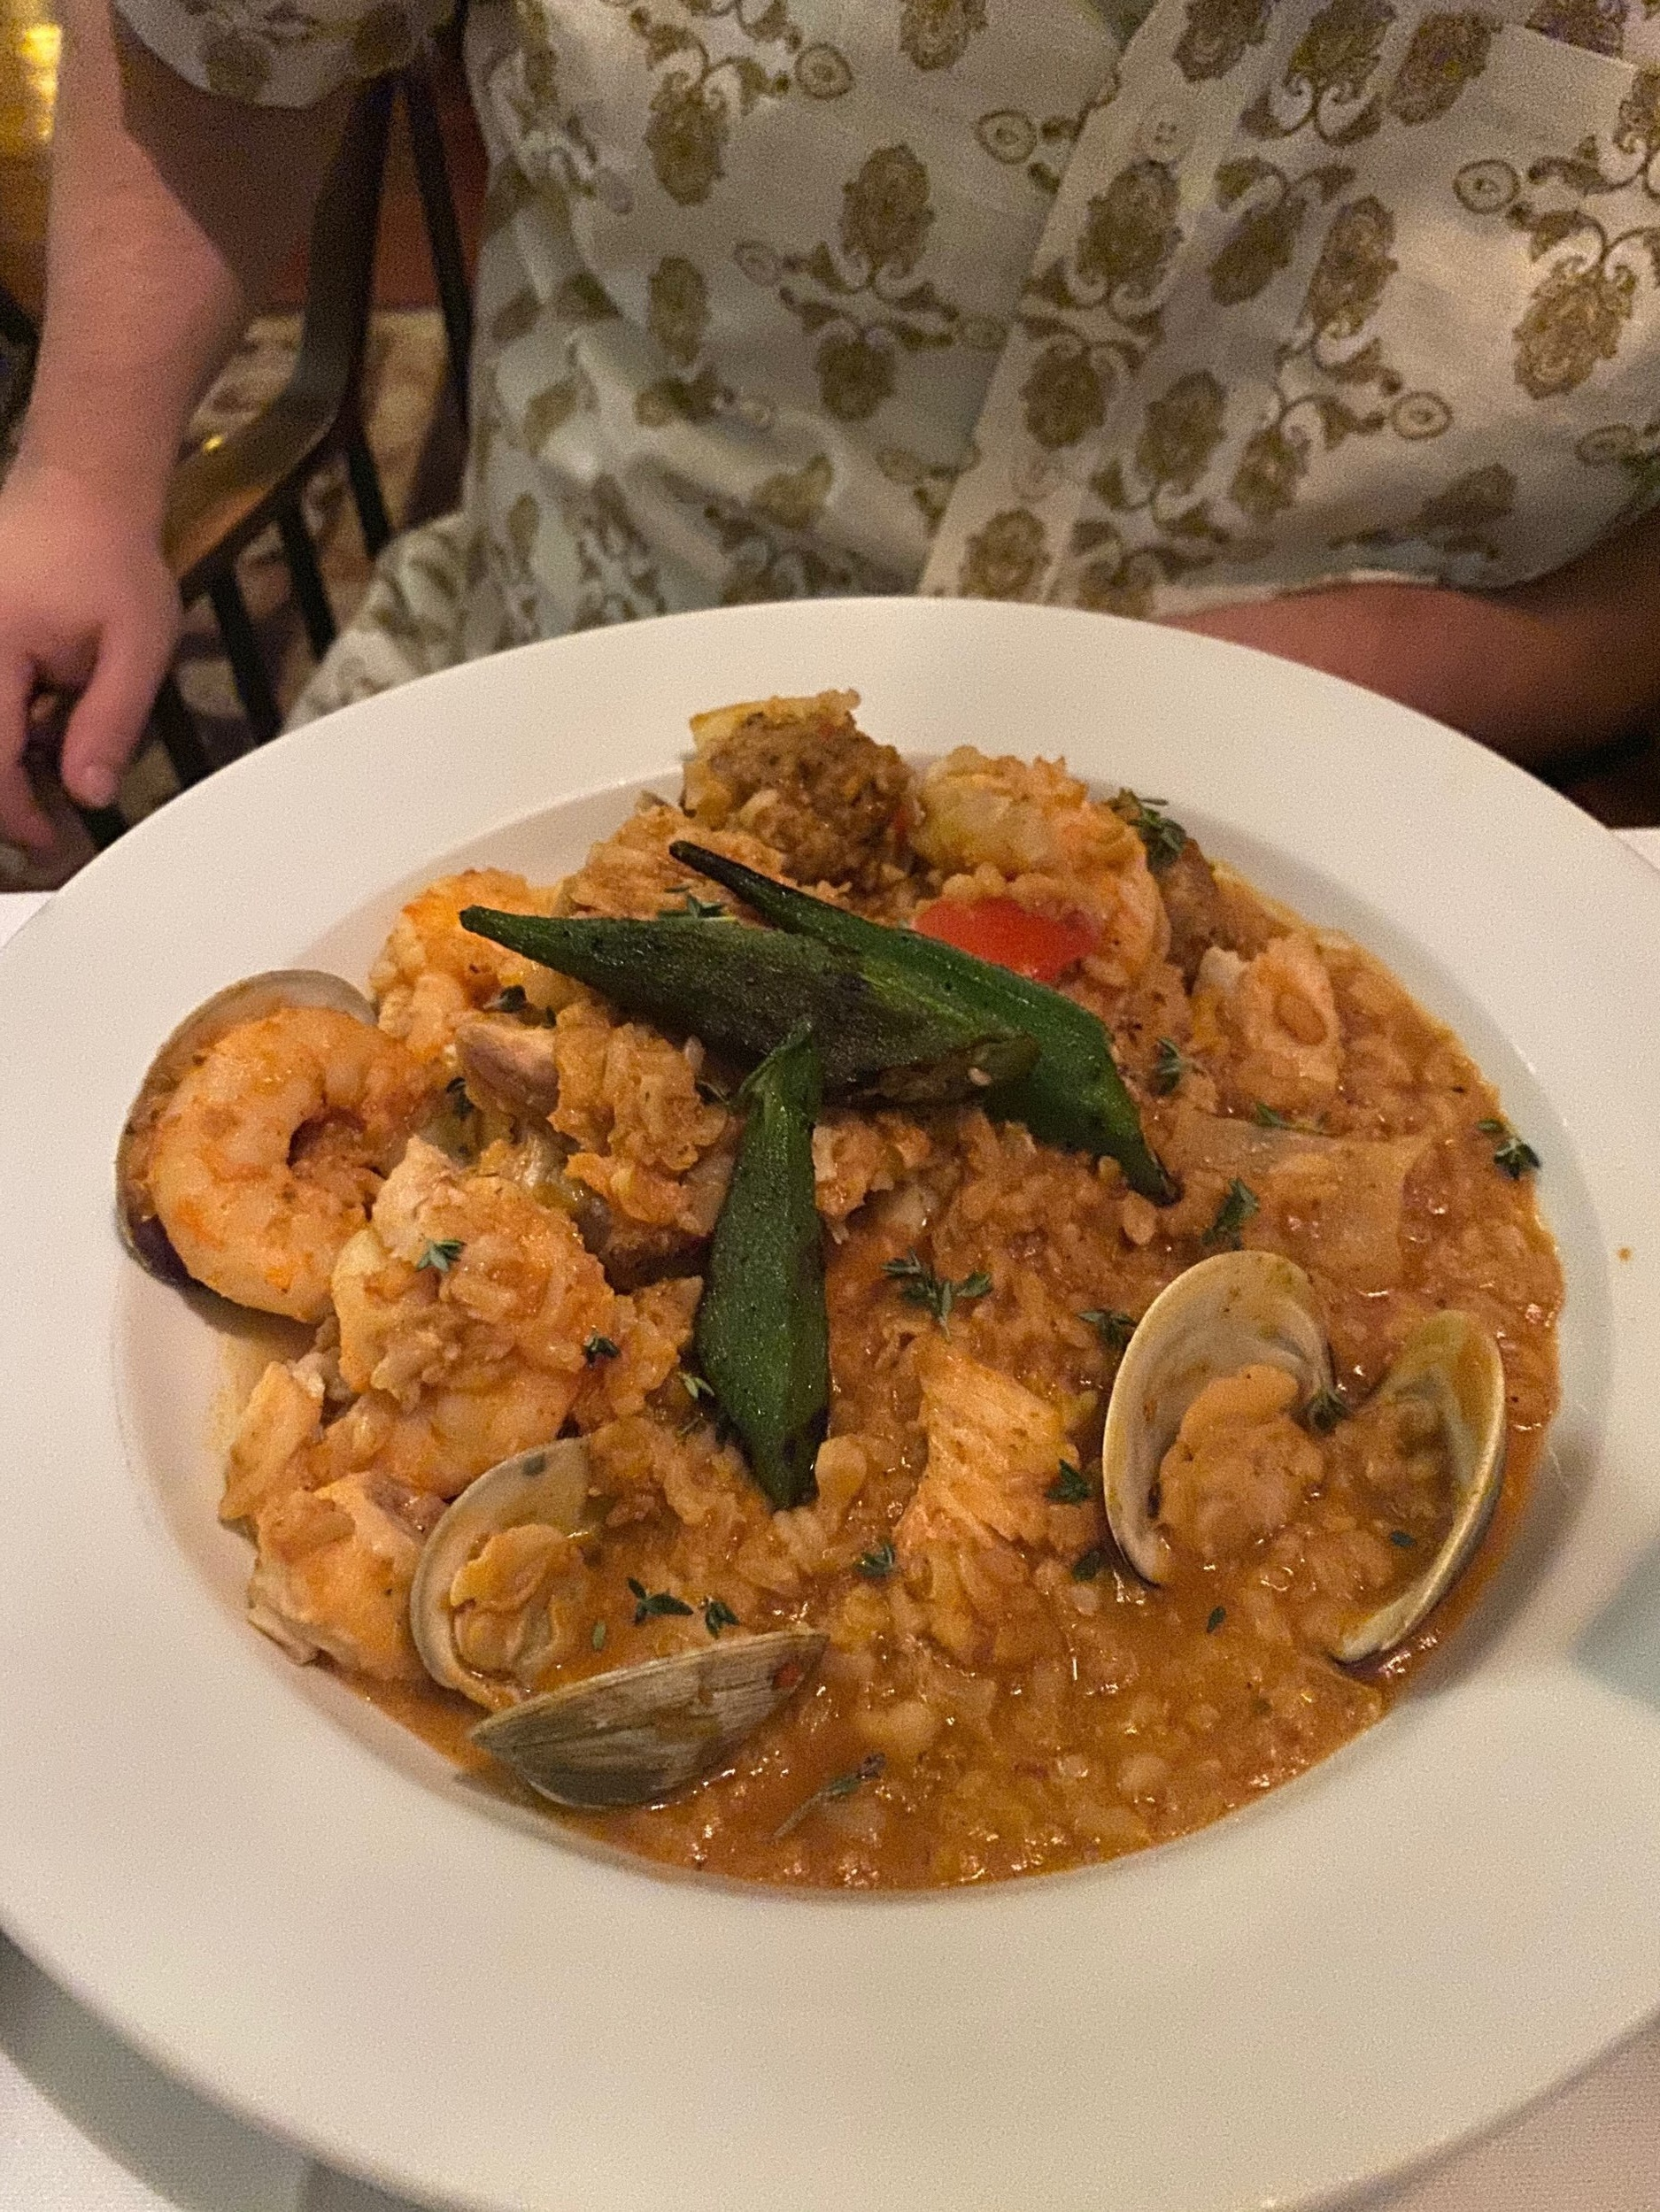 Here is Martin's Savannah Red Rice with Georgia Prawns, whitefish, clams AND sausage!